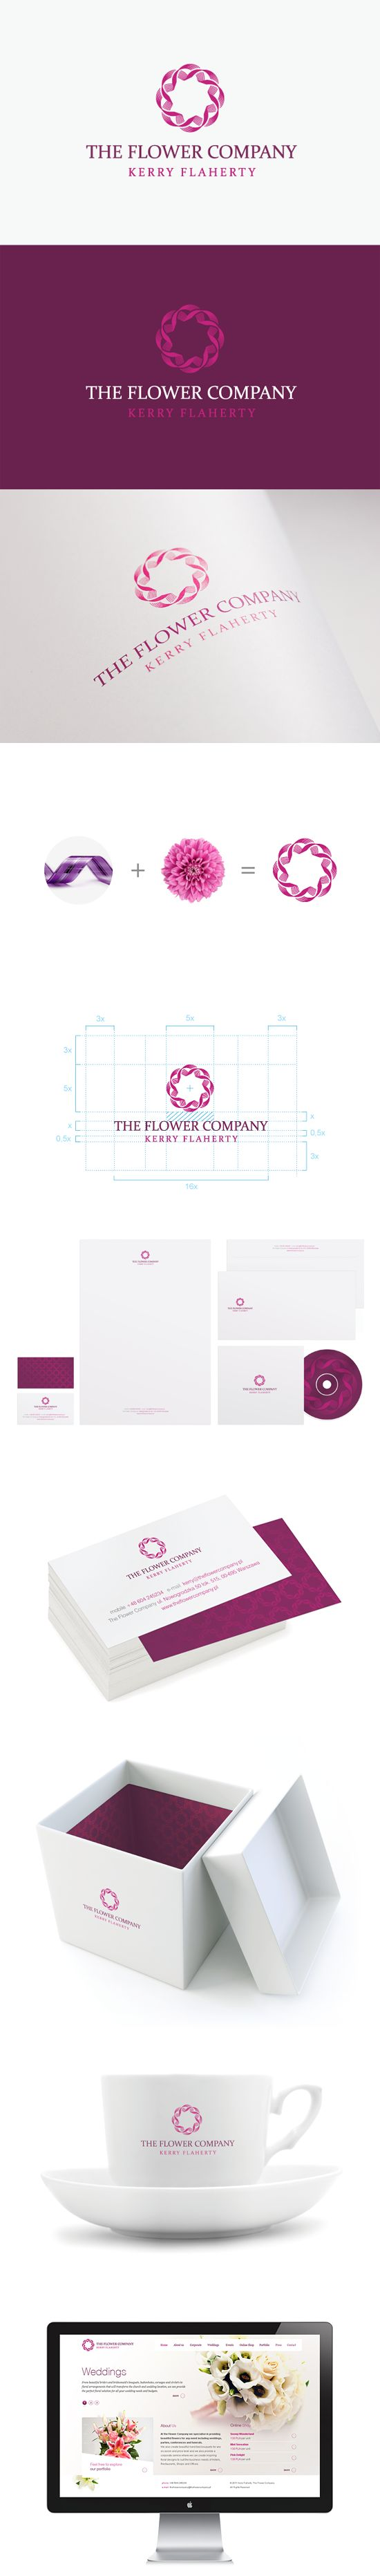 The Flower Company | Branding / logo / identity / design / concepts / sketches / pink and purple / stationery